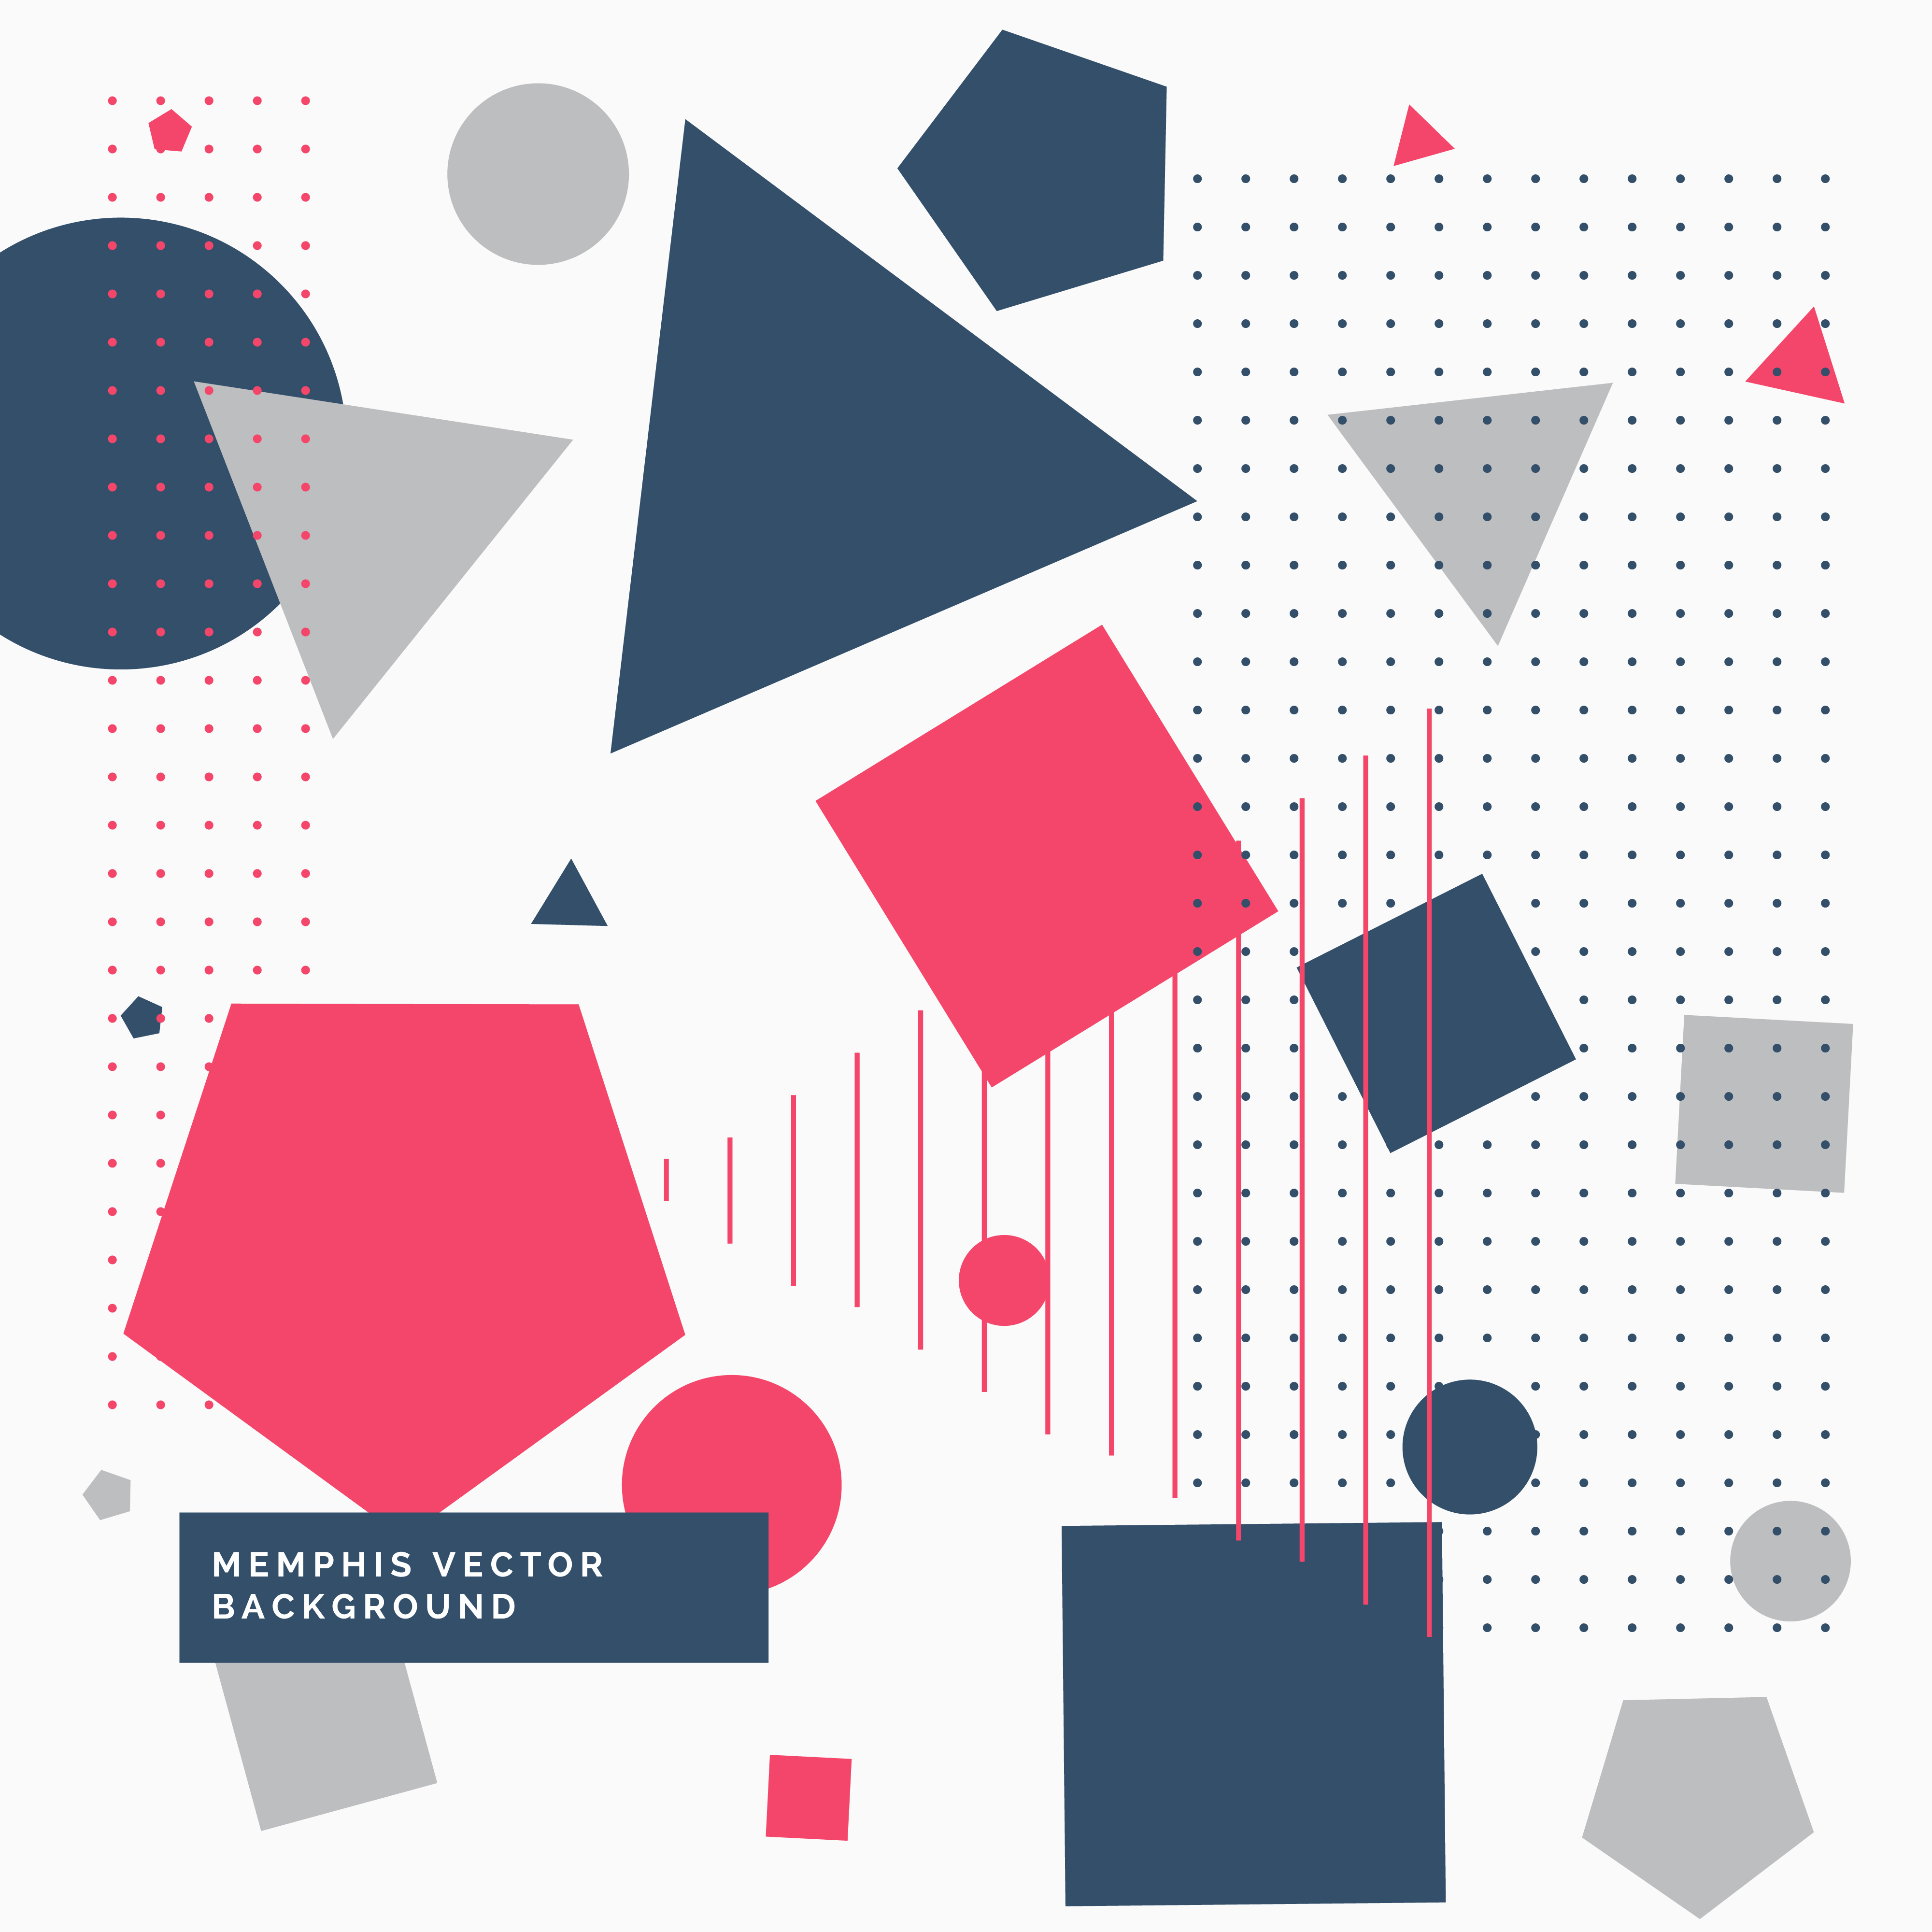 Abstrat Background With Geometric Shapes